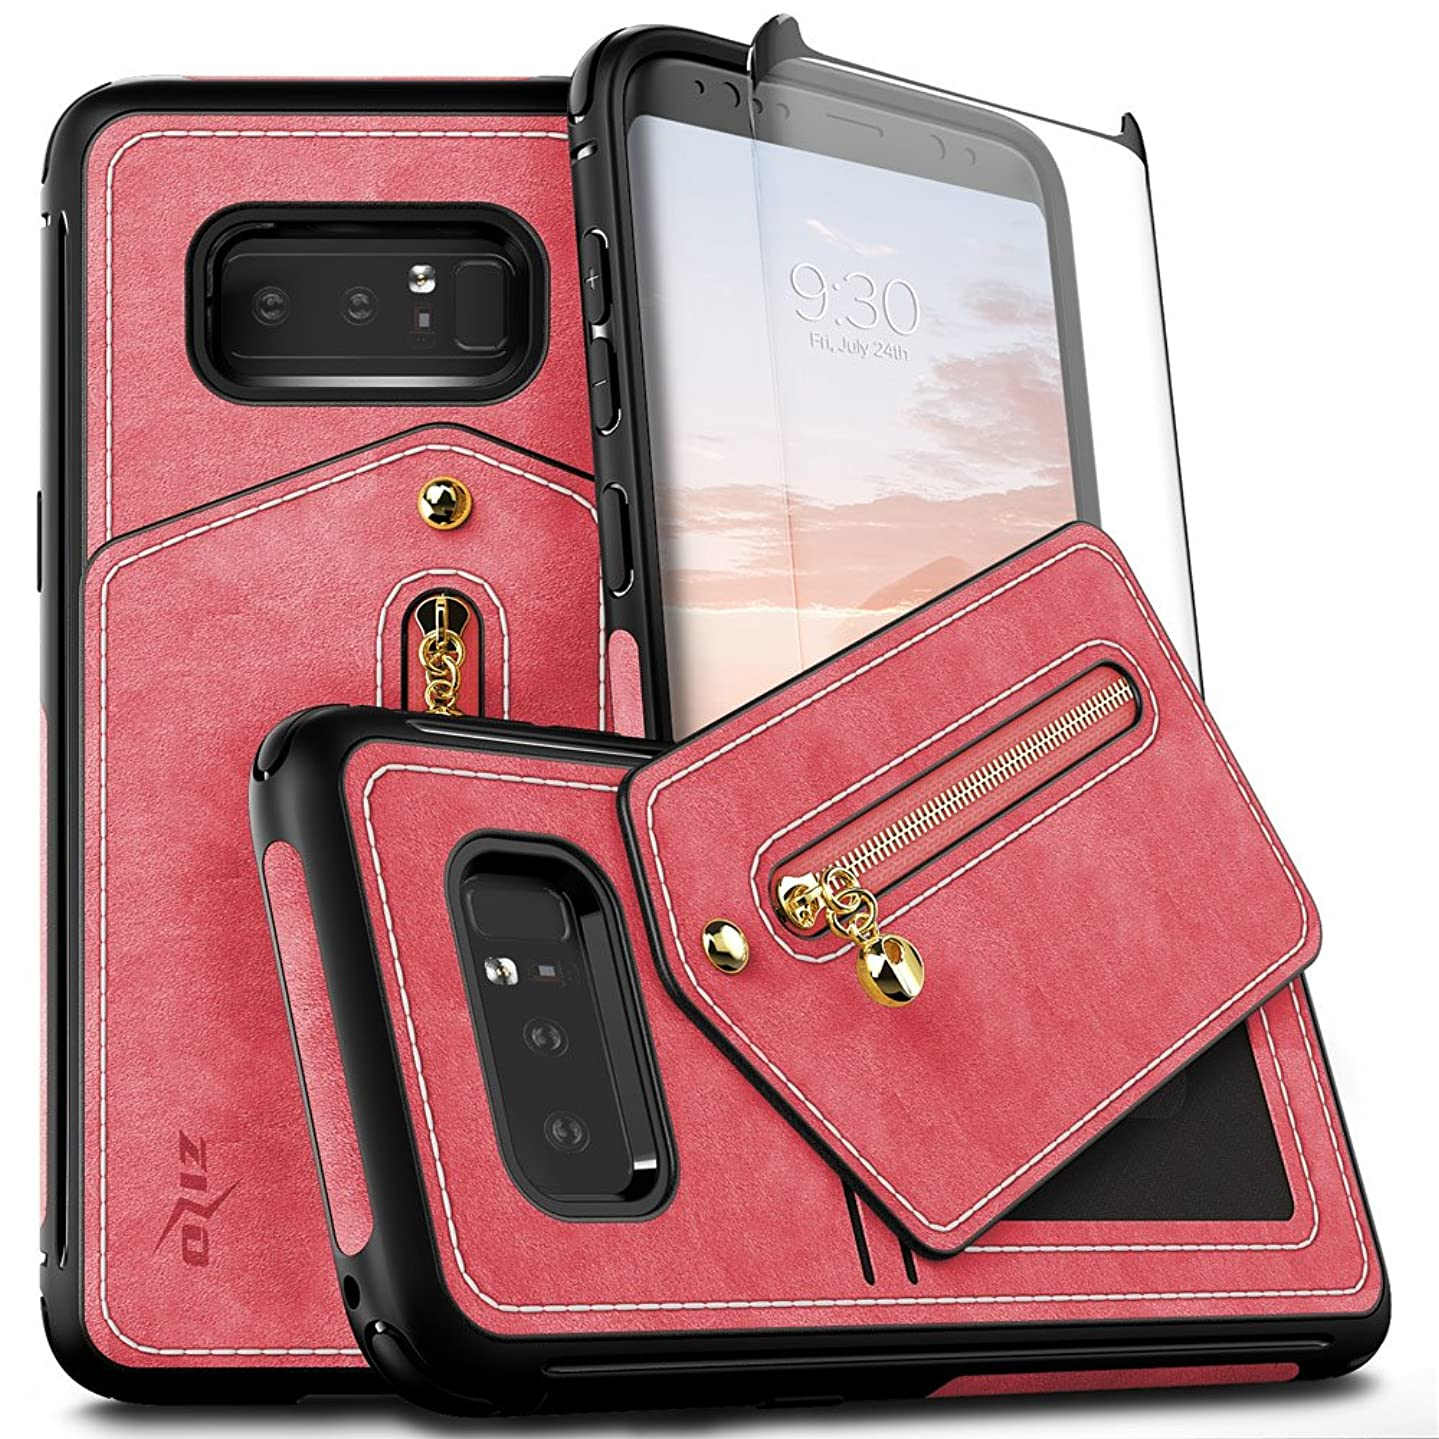 Zizo Nebula Wallet Series Compatible with Samsung Galaxy Note 8 Case with Tempered Glass Screen Protector Leather Folio Card Slots Pink Black